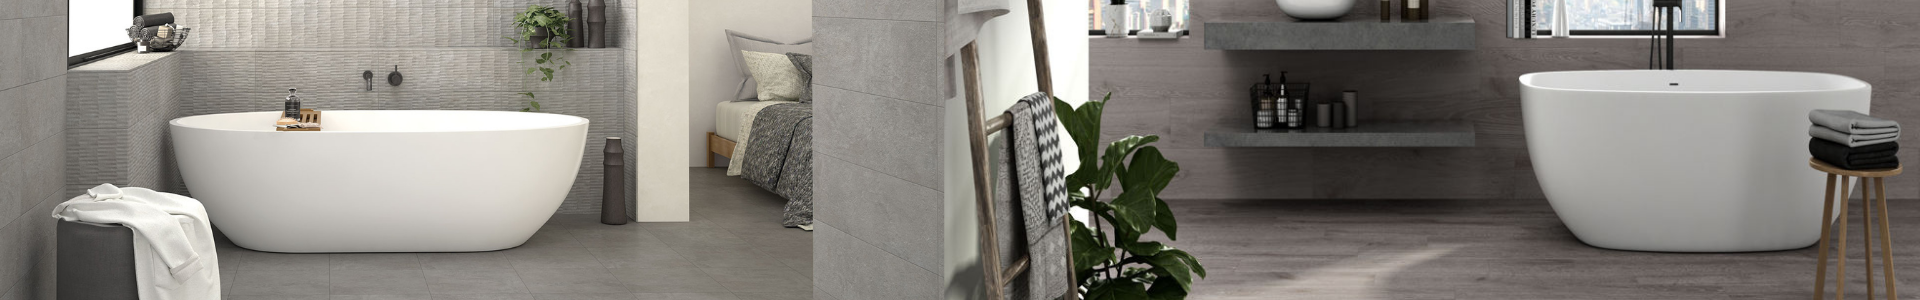 Affordable Luxury Tiles banner 3